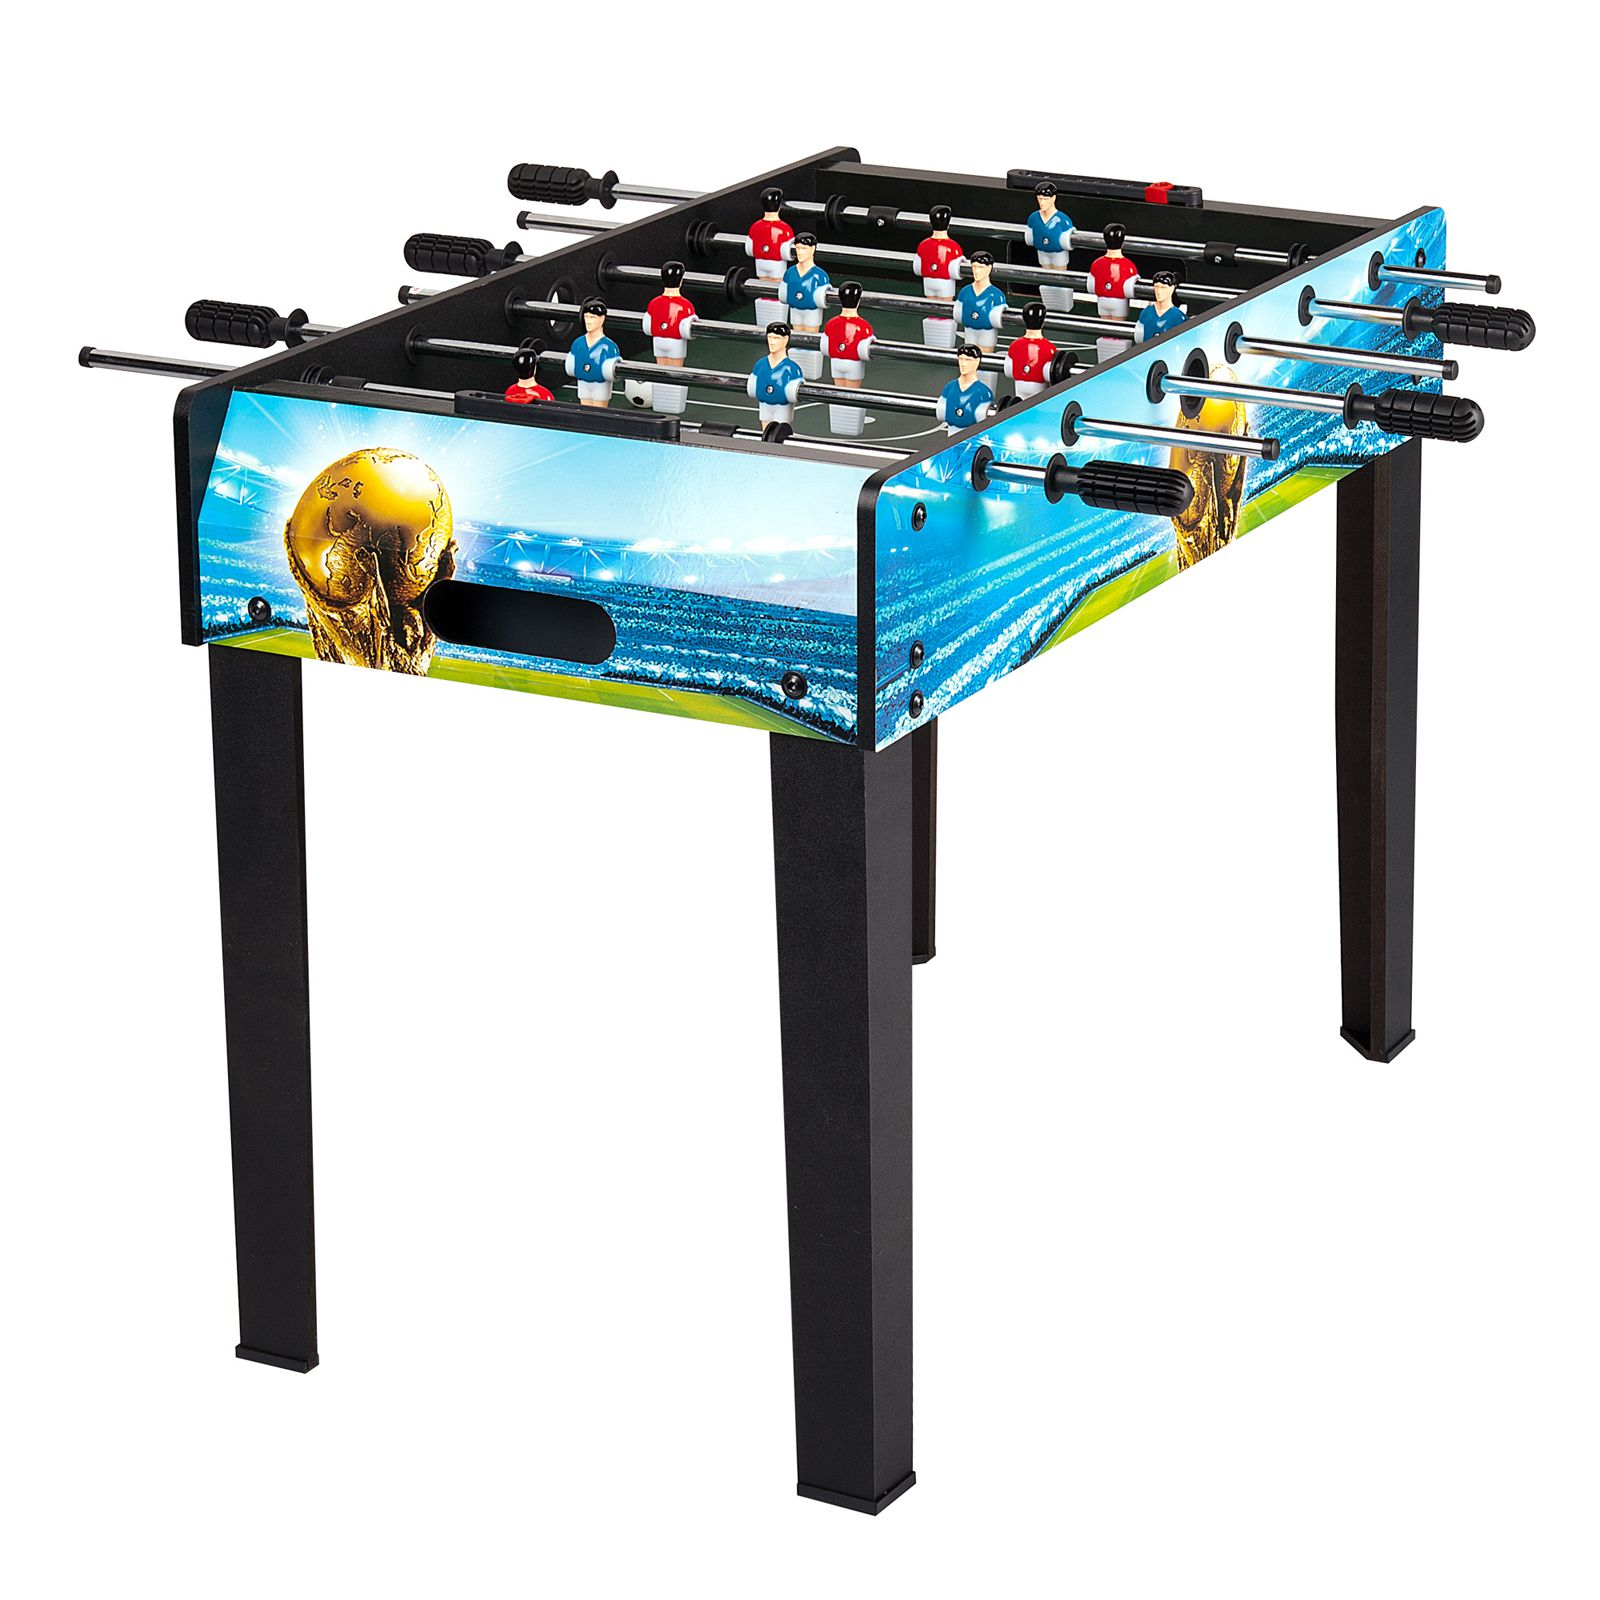 Kids games tables football and pool tables play sets for Table 6 games